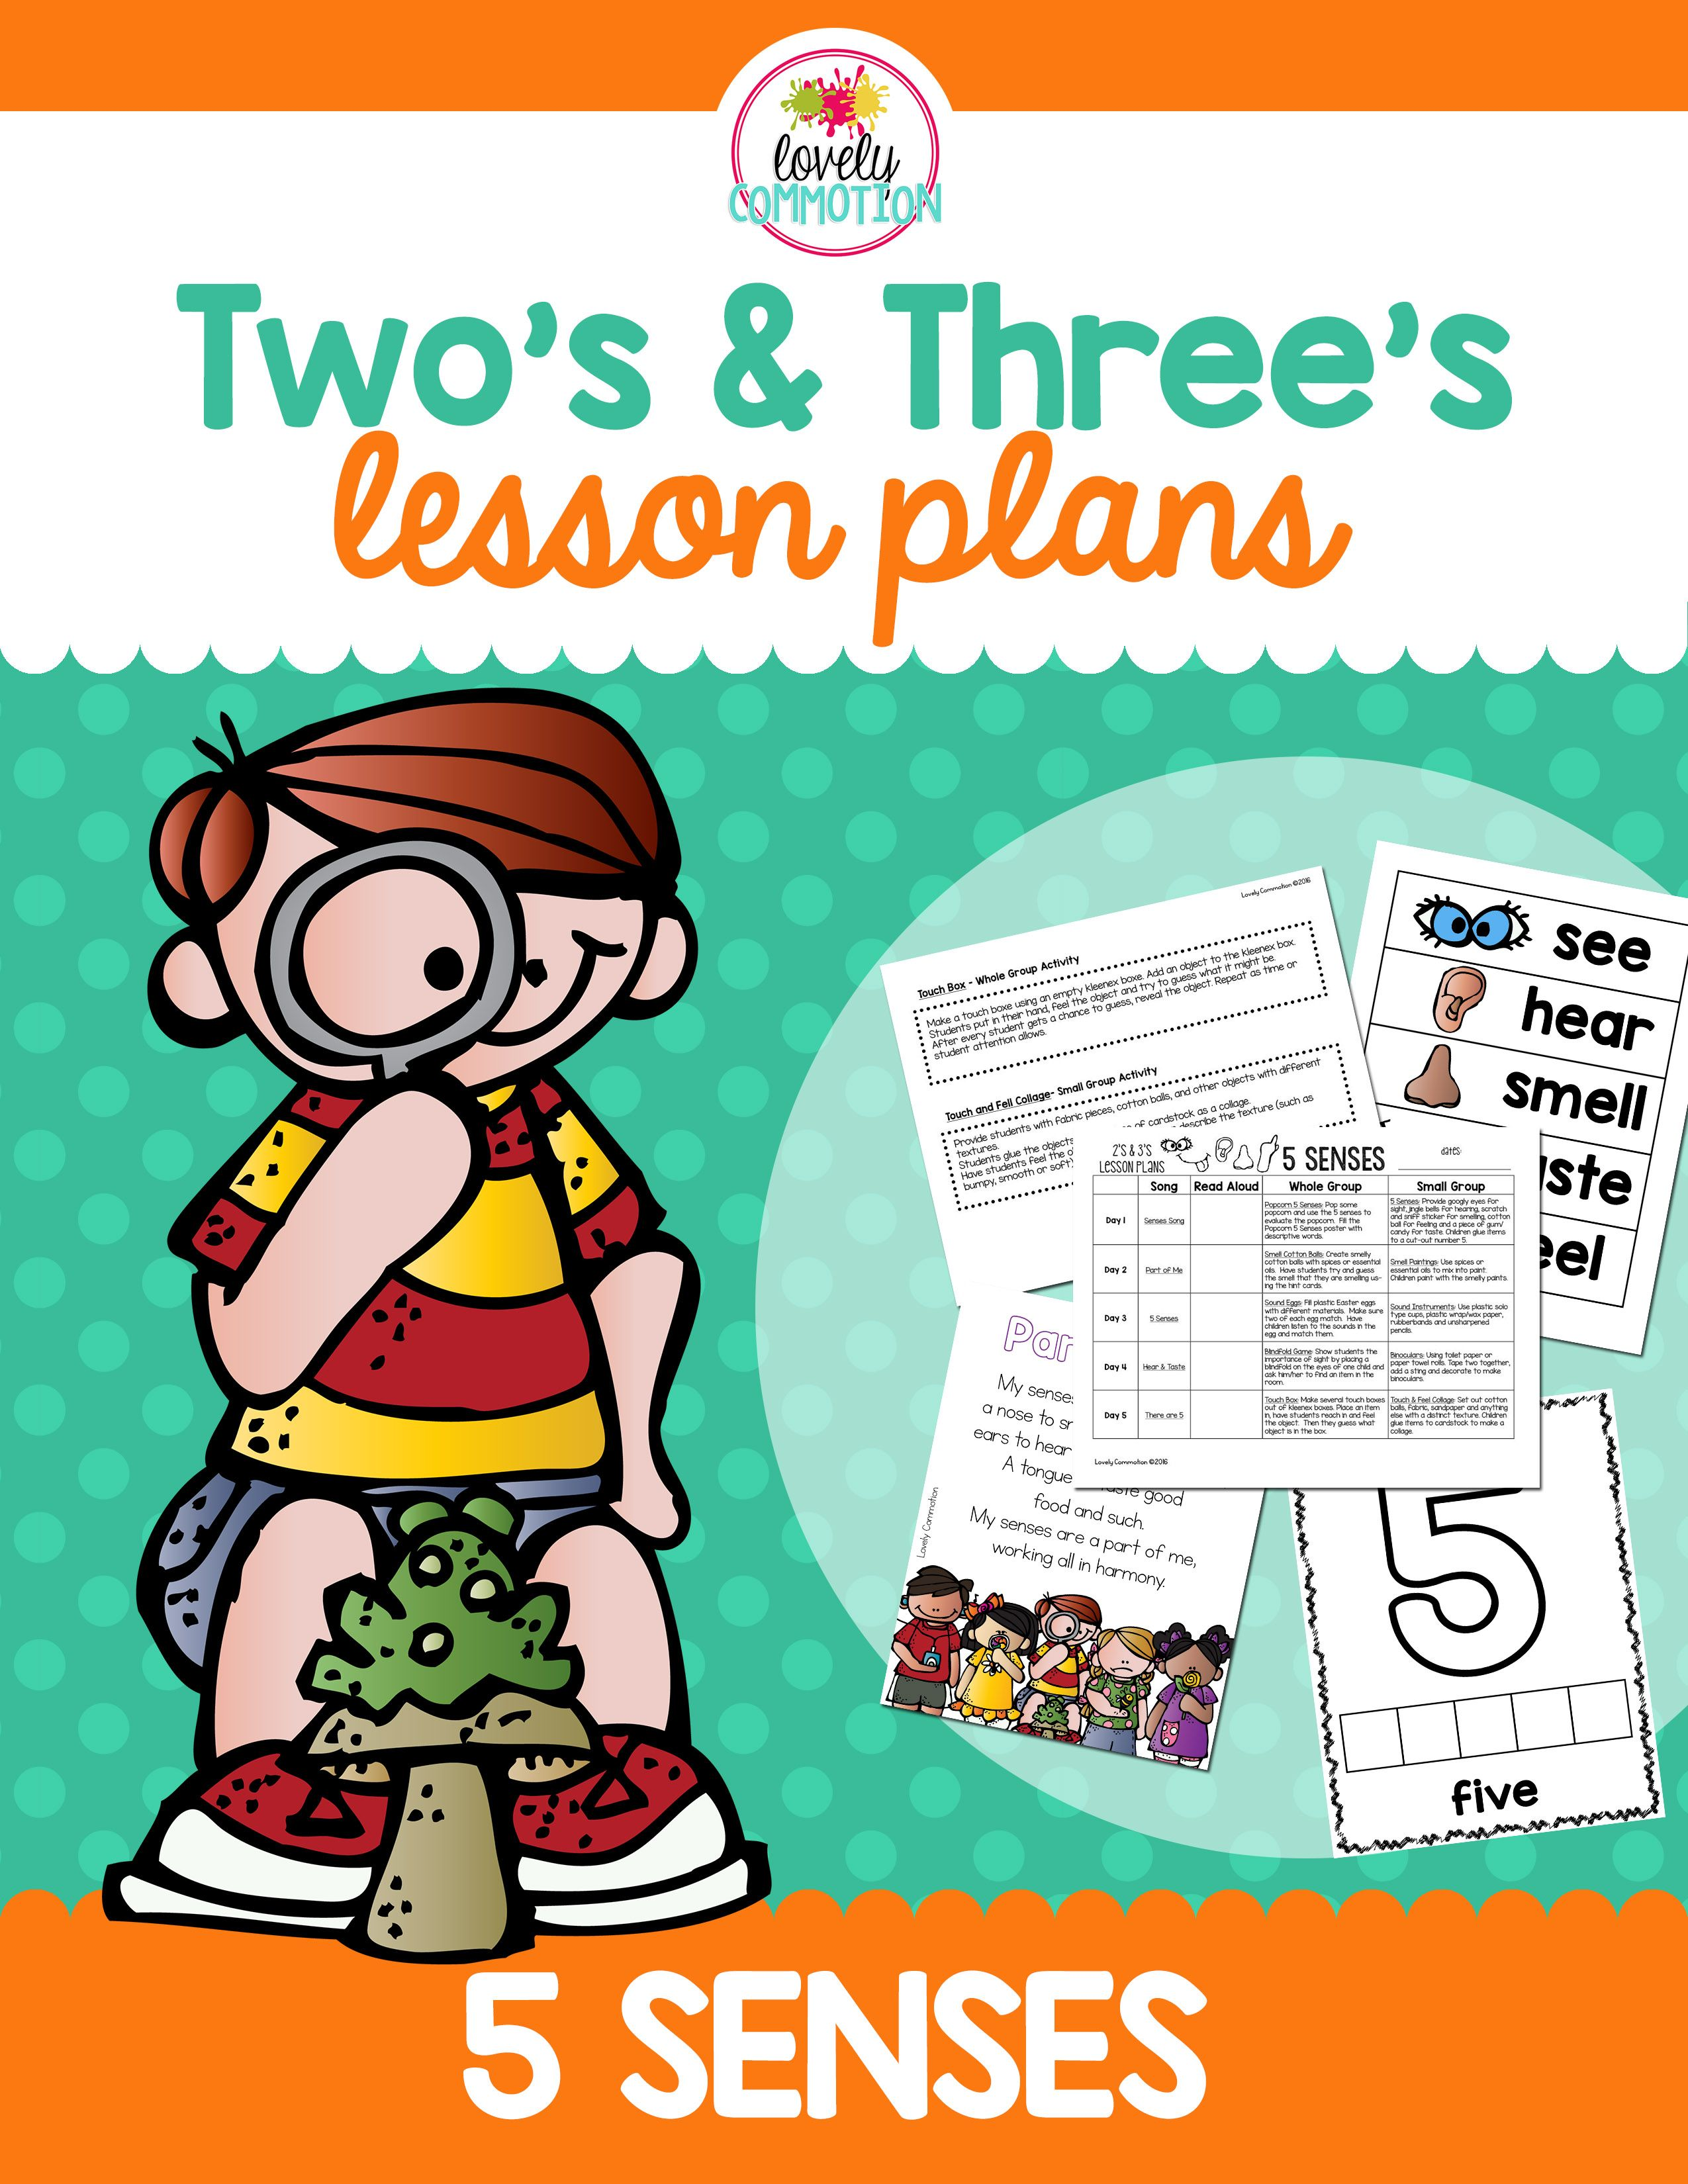 5 Senses Lesson Plan For 2 And 3 Year Olds